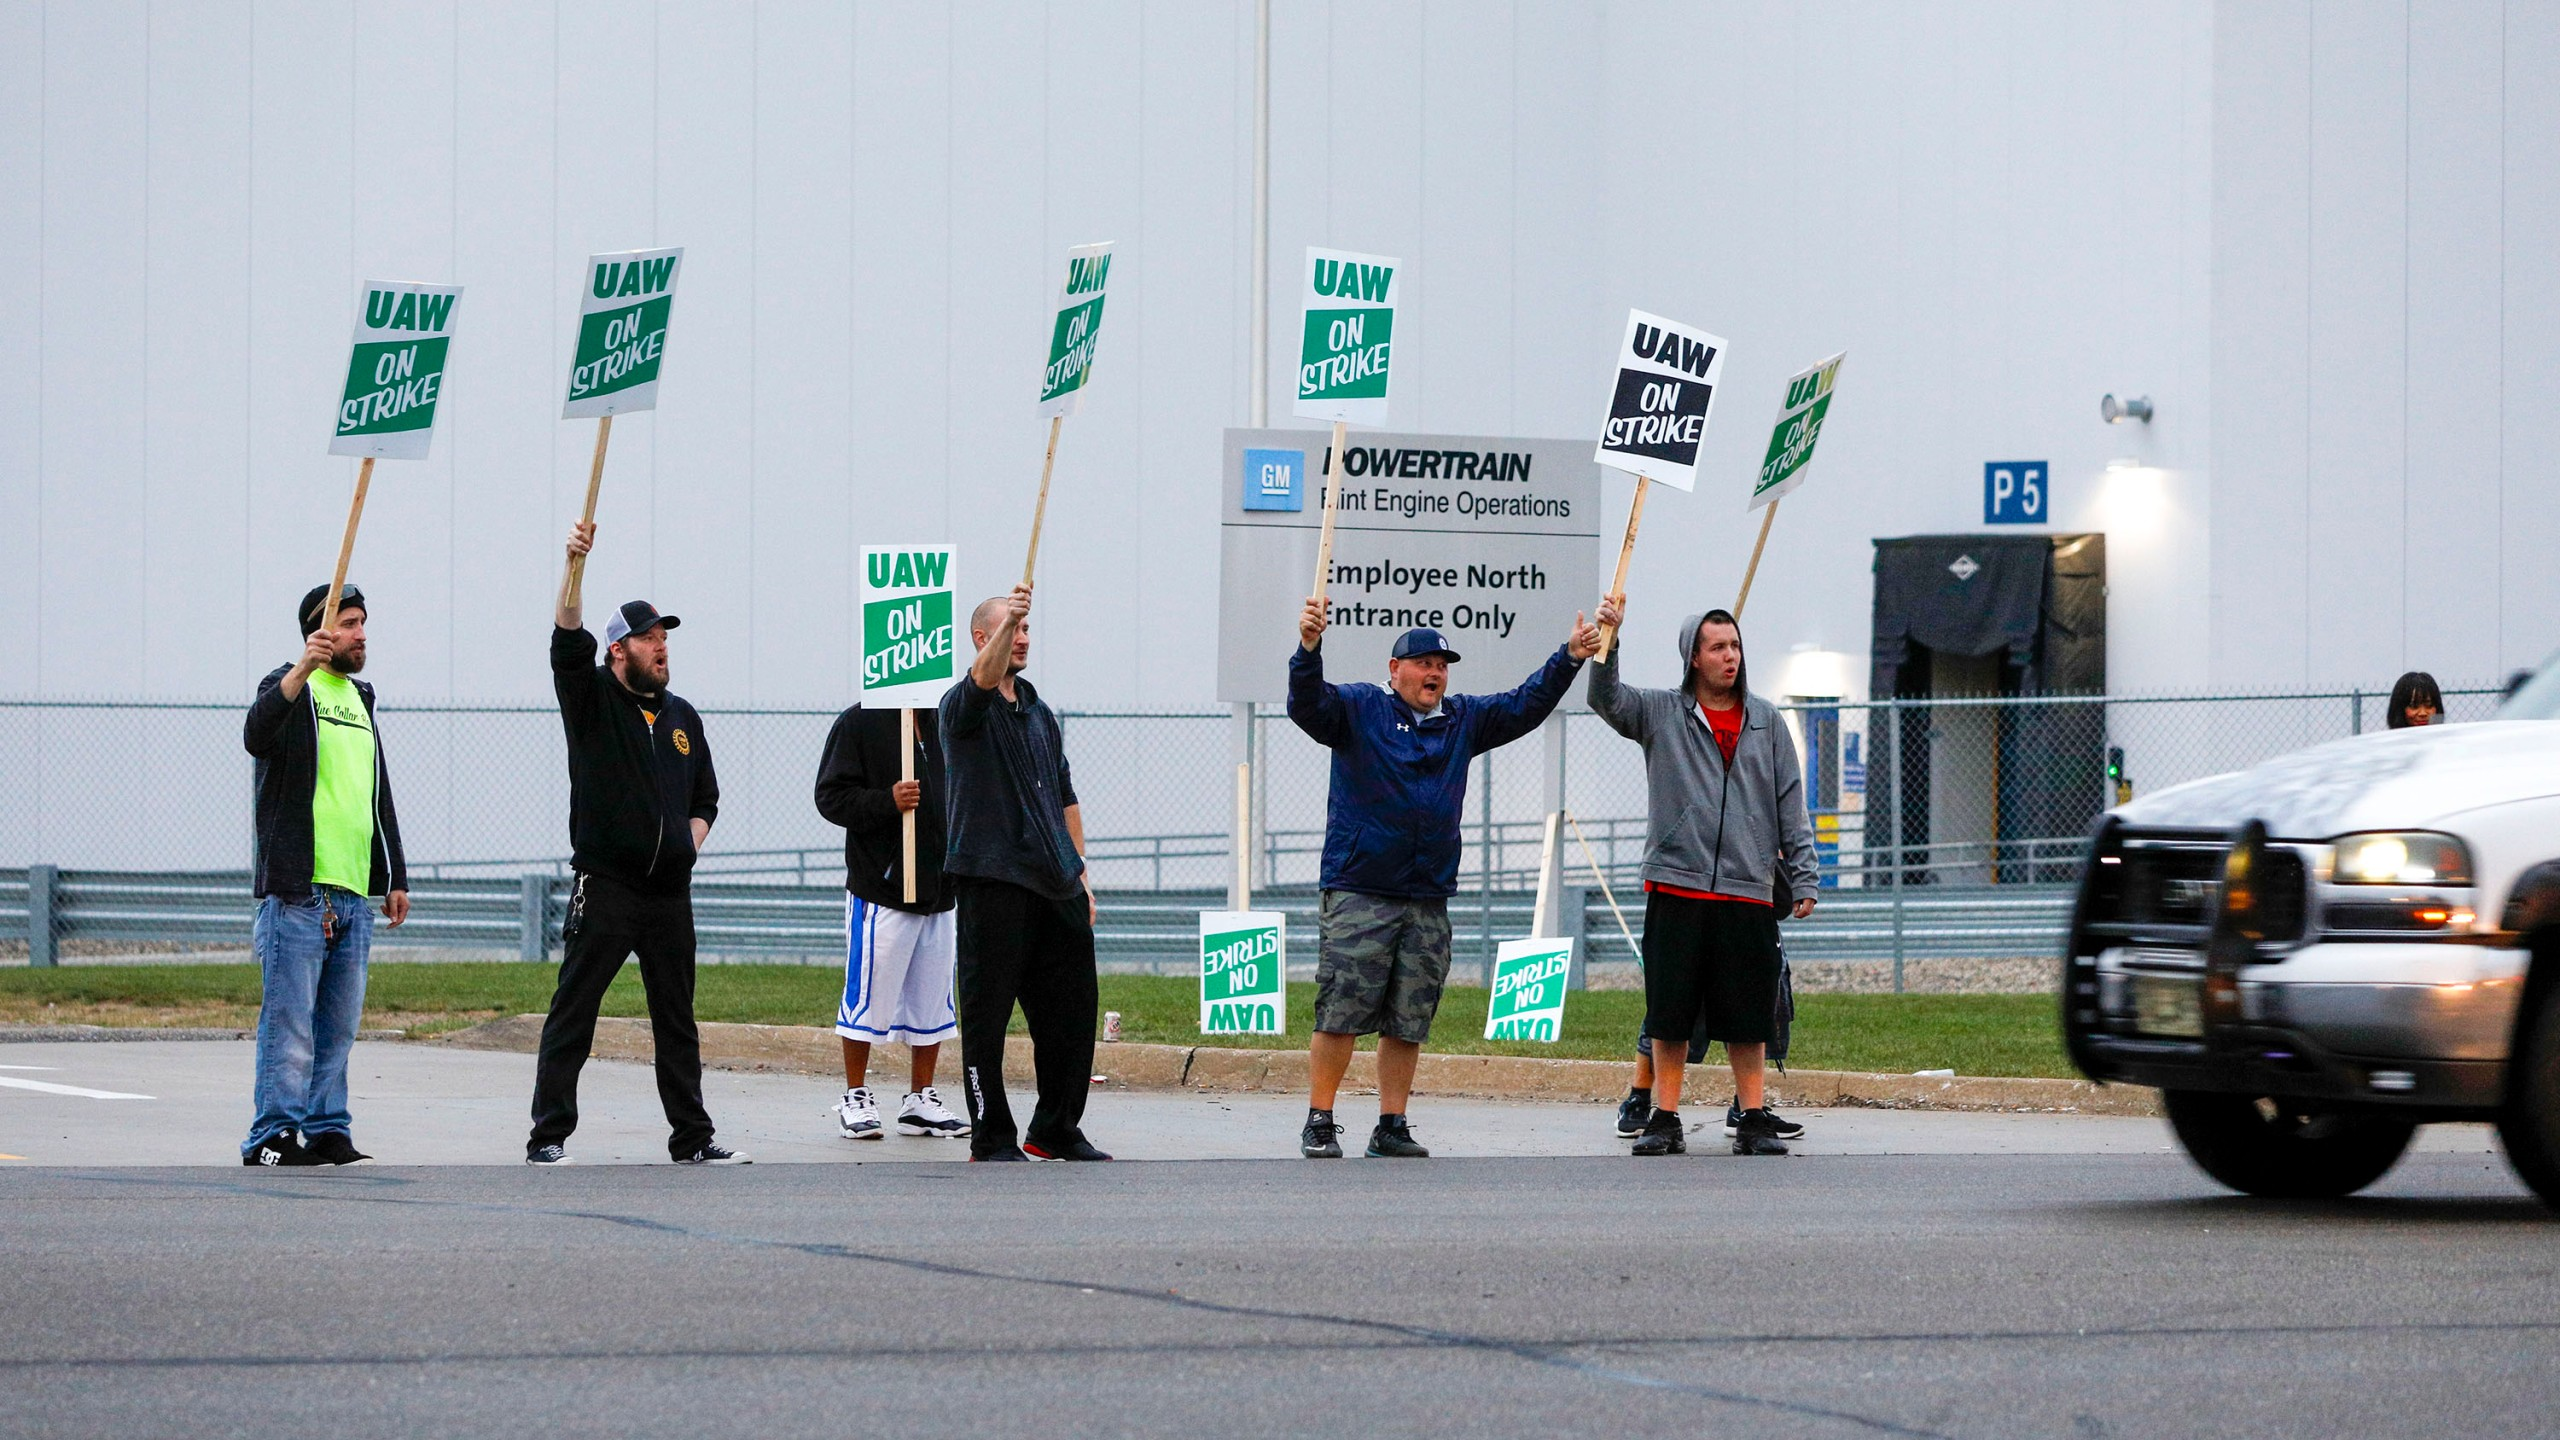 United Auto Workers members picket at a gate at the General Motors Flint Assembly Plant after the UAW declared a national strike against GM at midnight on Sept. 16, 2019 in Flint, Michigan. (Credit: Bill Pugliano/Getty Images)